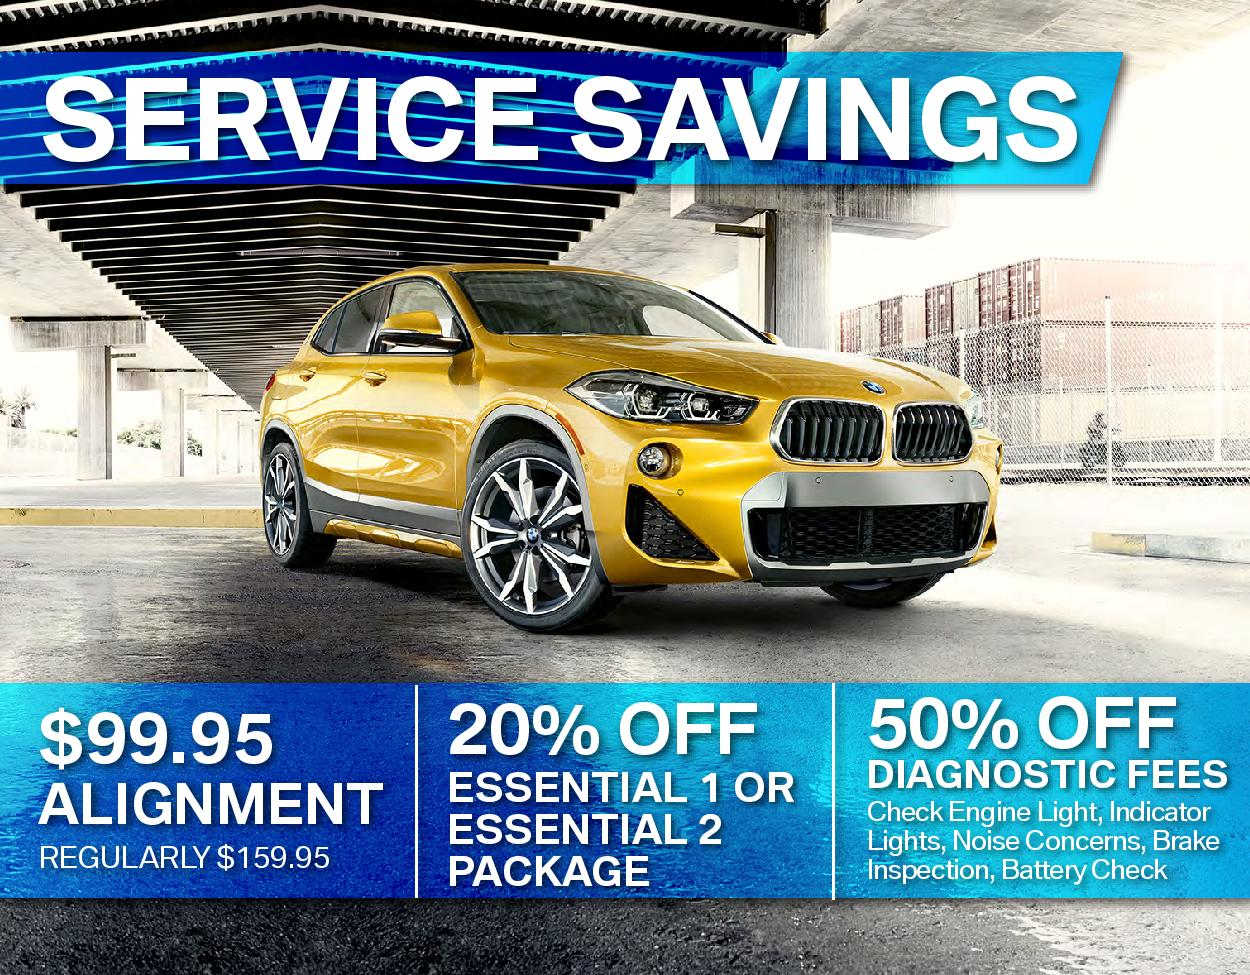 $99.95 Alignment / 20% OFF Essentials Package 1 or 2 / 50% OFF Diagnostic Fees